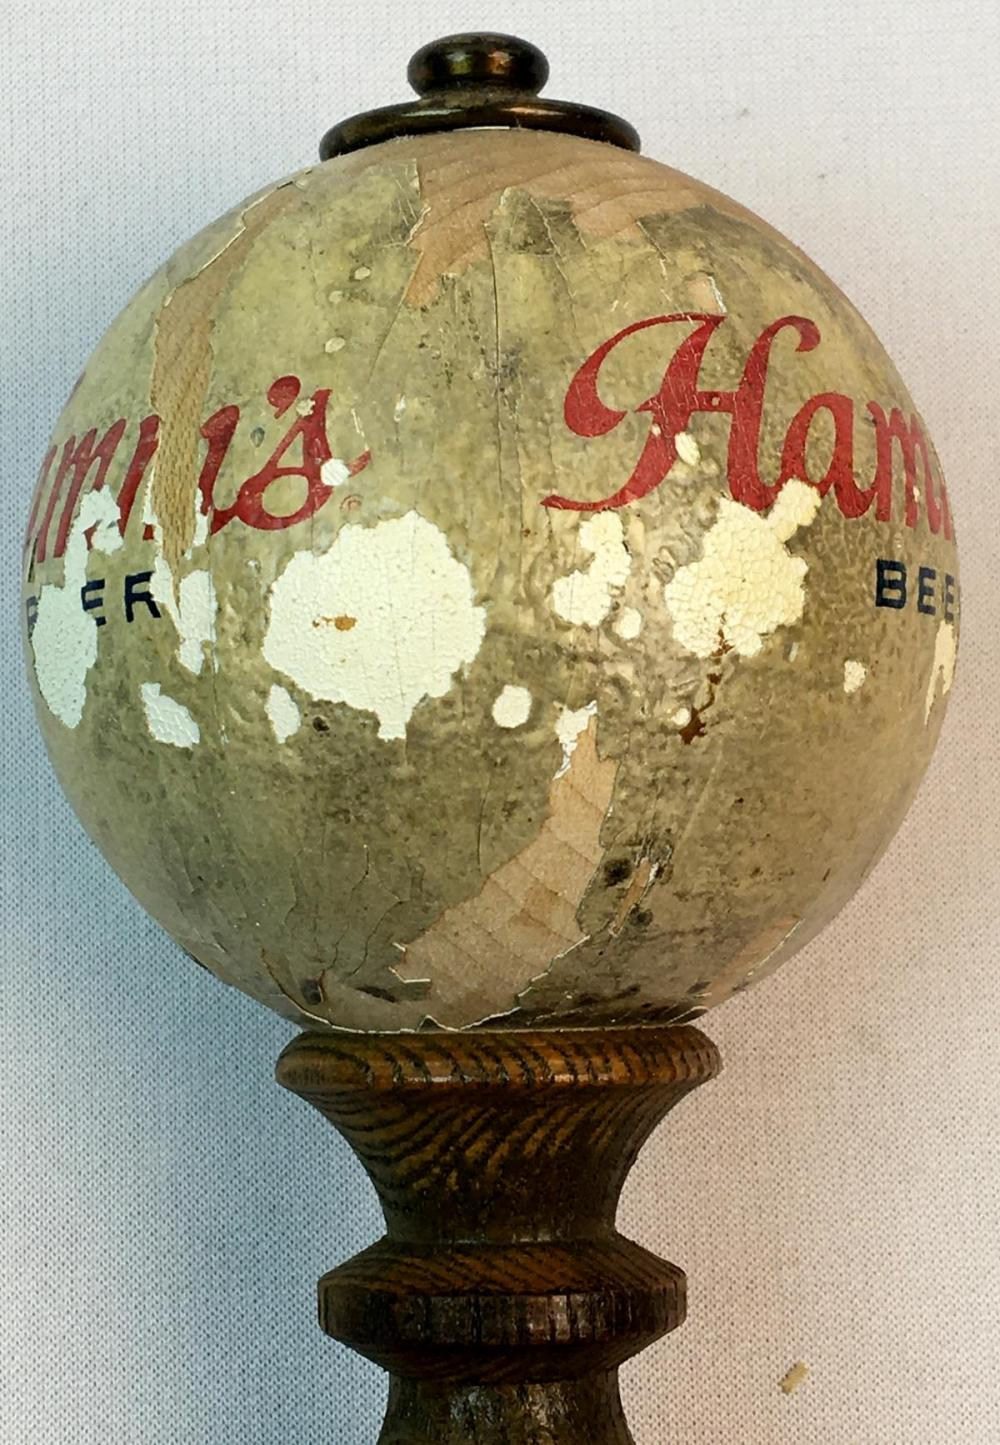 RARE Vintage 1940's Hamm's Beer Ball / Globe Tap Handle